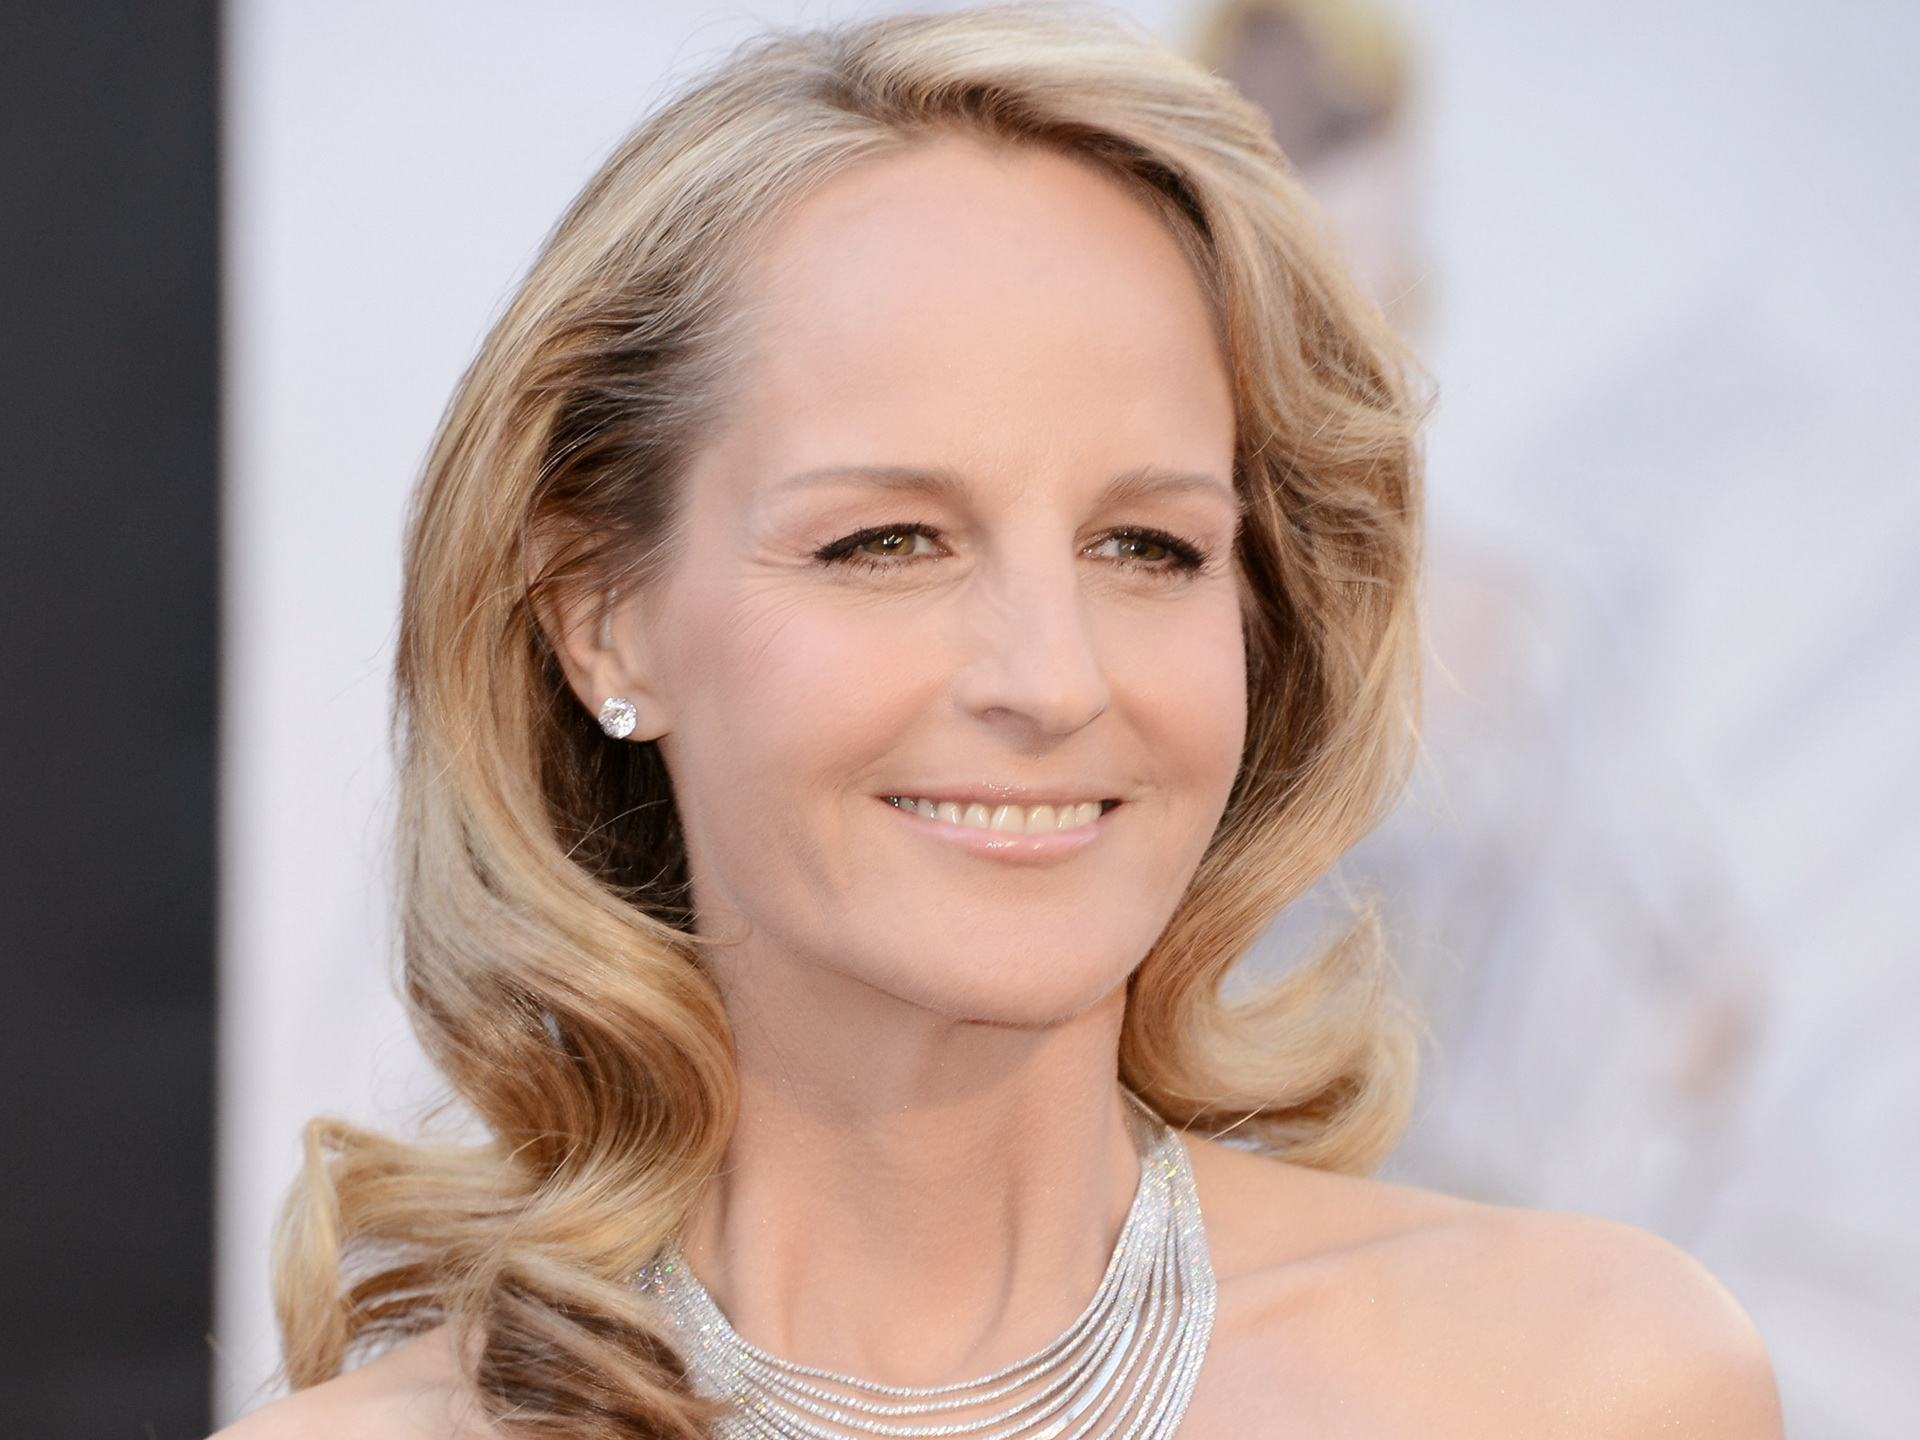 Celebrity Helen Hunt nudes (14 foto and video), Ass, Bikini, Twitter, lingerie 2006